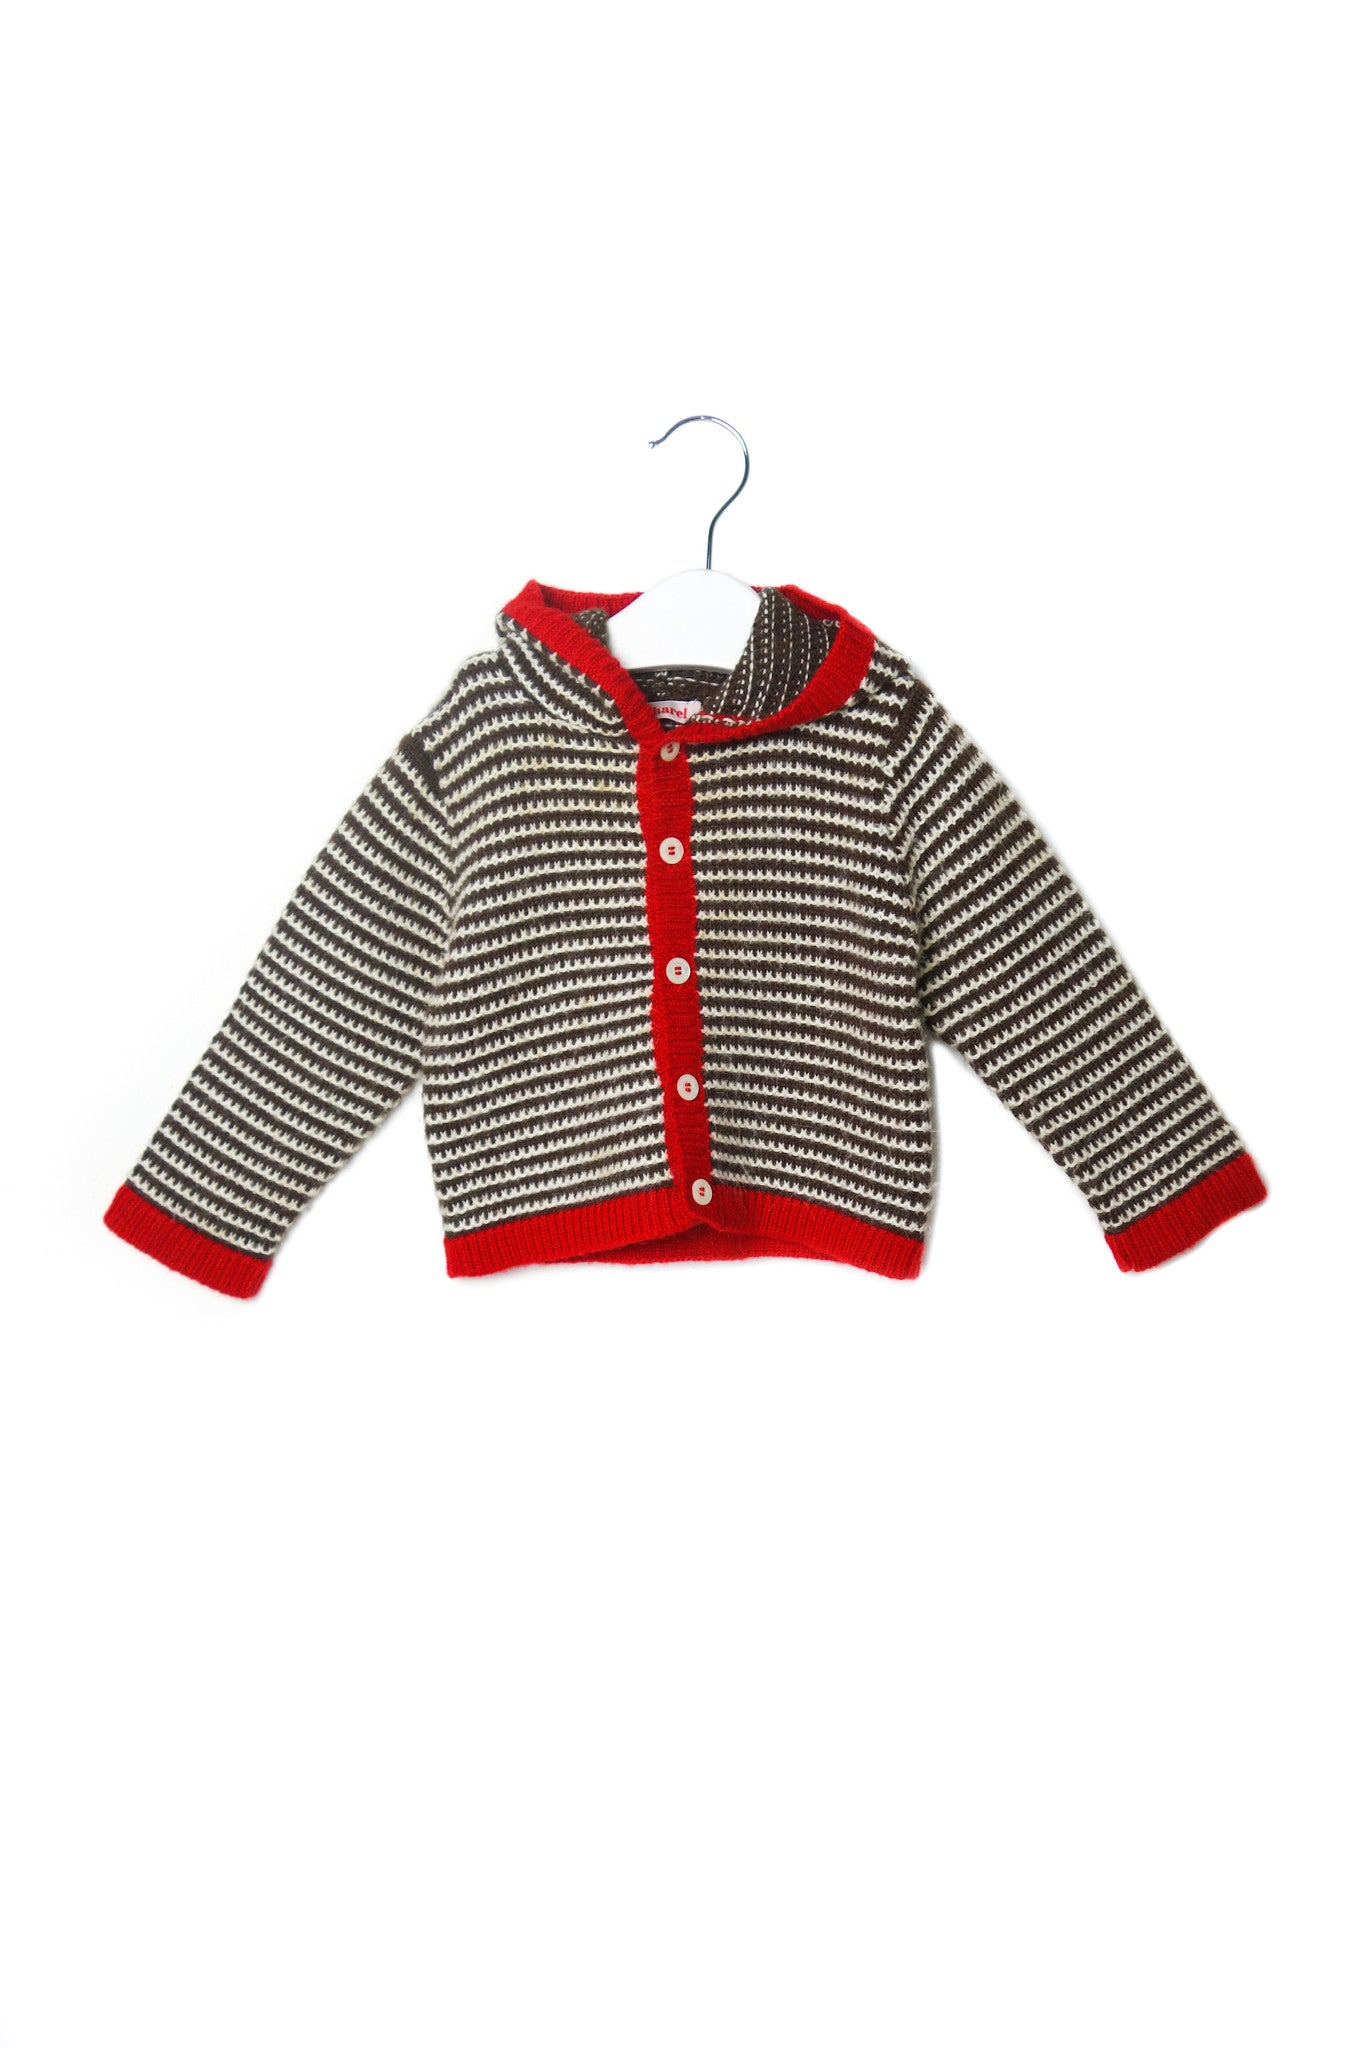 10001917 Cacharel Baby~Cardigan 6M at Retykle